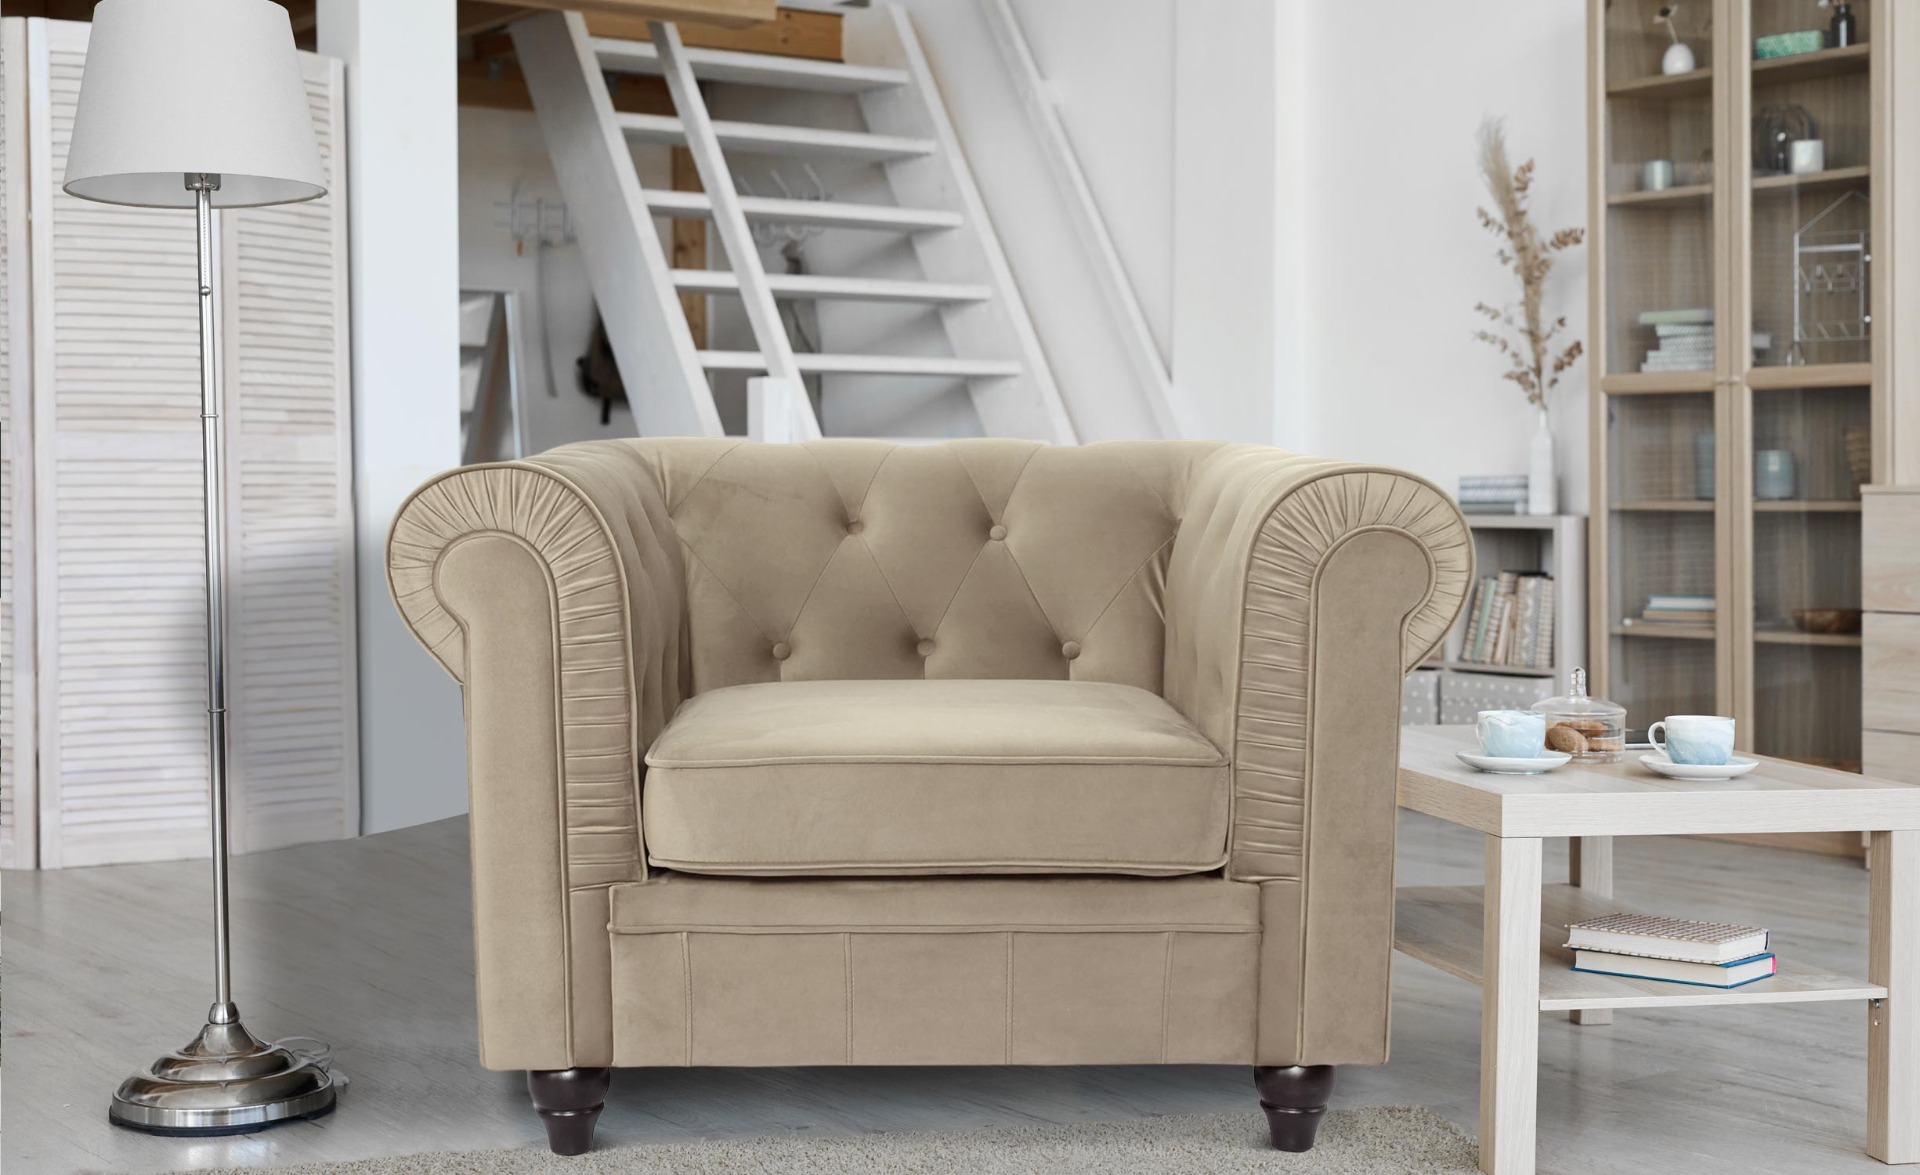 Grand fauteuil Chesterfield velours Taupe